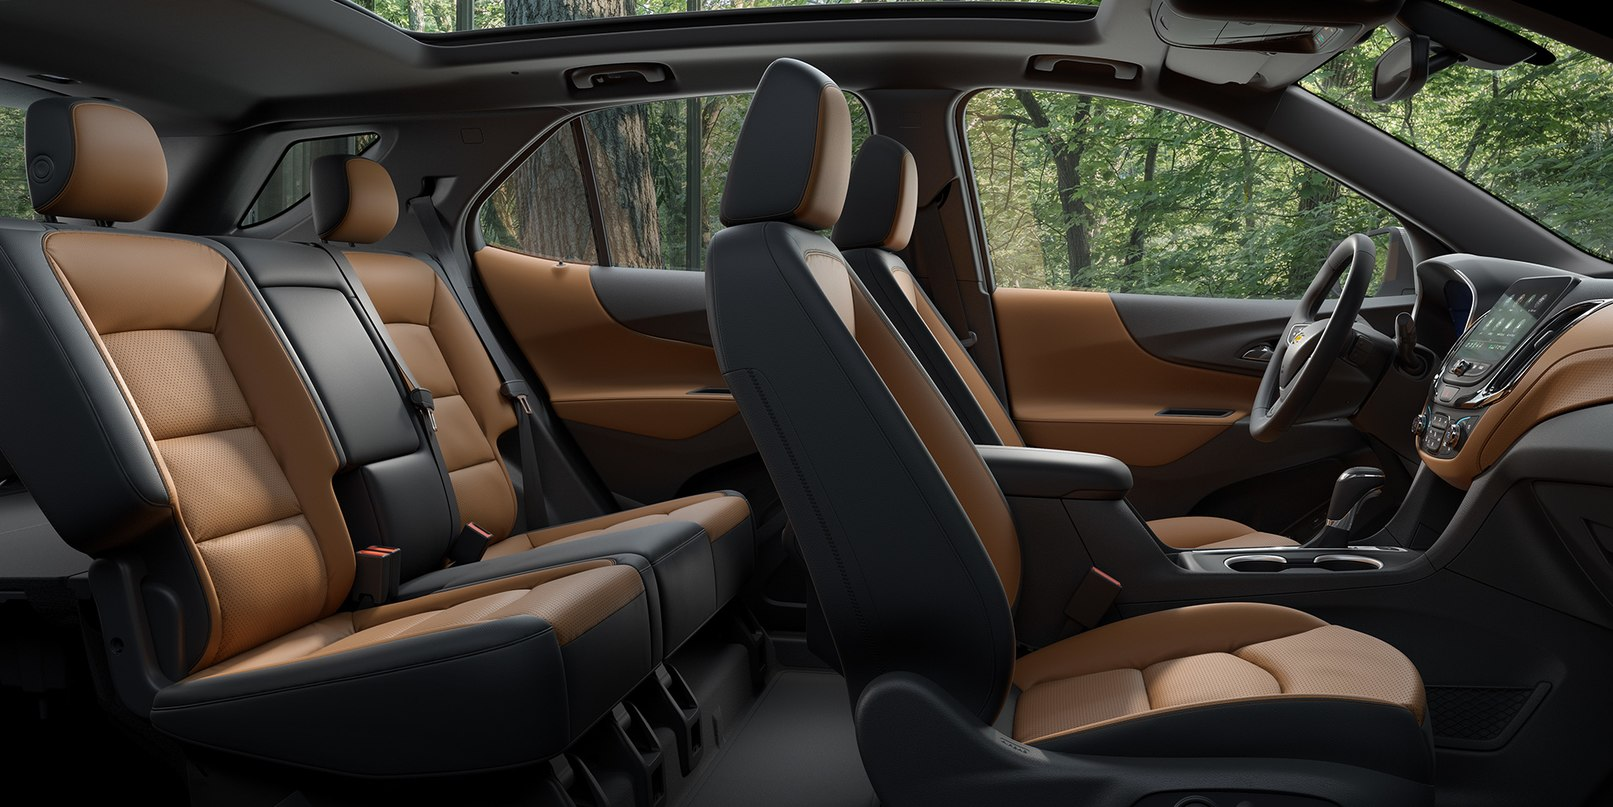 There's Plenty of Room in the Equinox!